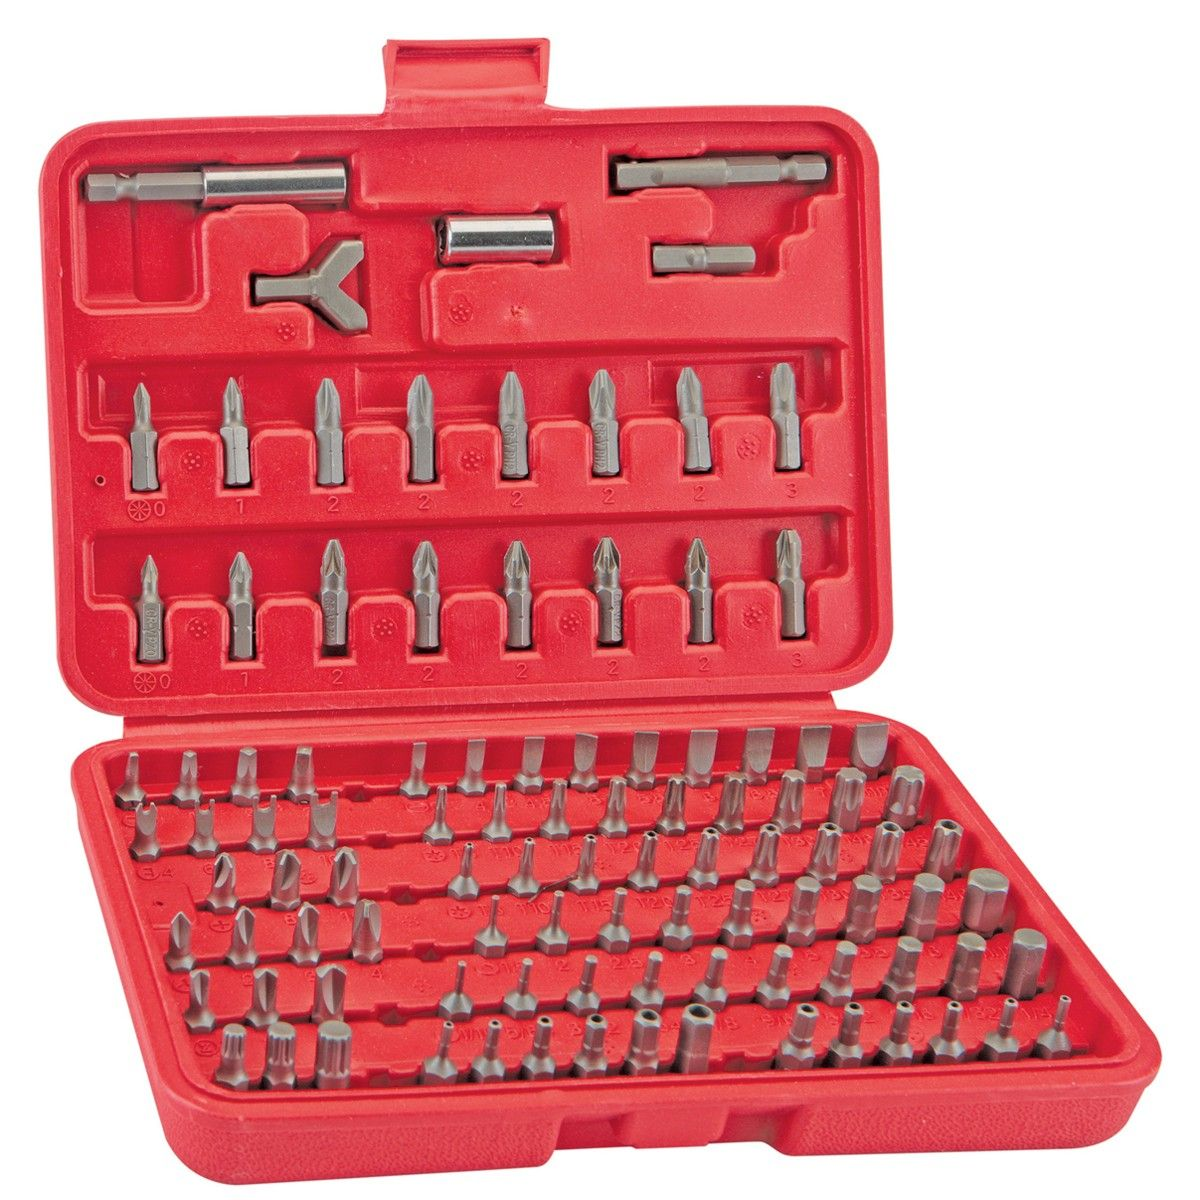 Security Bit Set With Case 100 Pc Router Bit Set Harbor Freight Tools Things To Sell